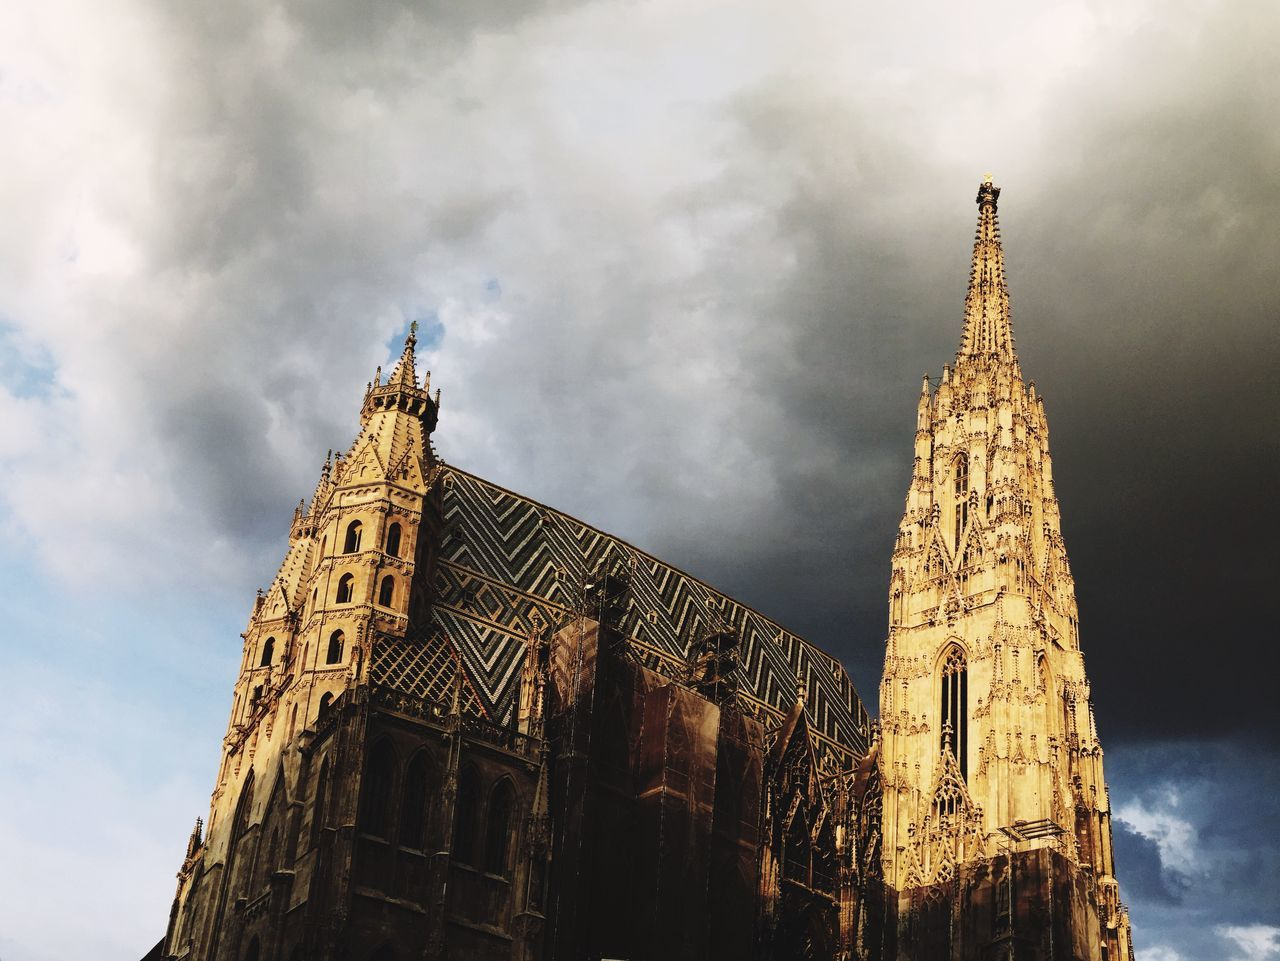 Cathedral Clouds Cloudy How's The Weather Today? Historical Building Architecture Old Buildings Sunny Gray Day. Panorama The City Light